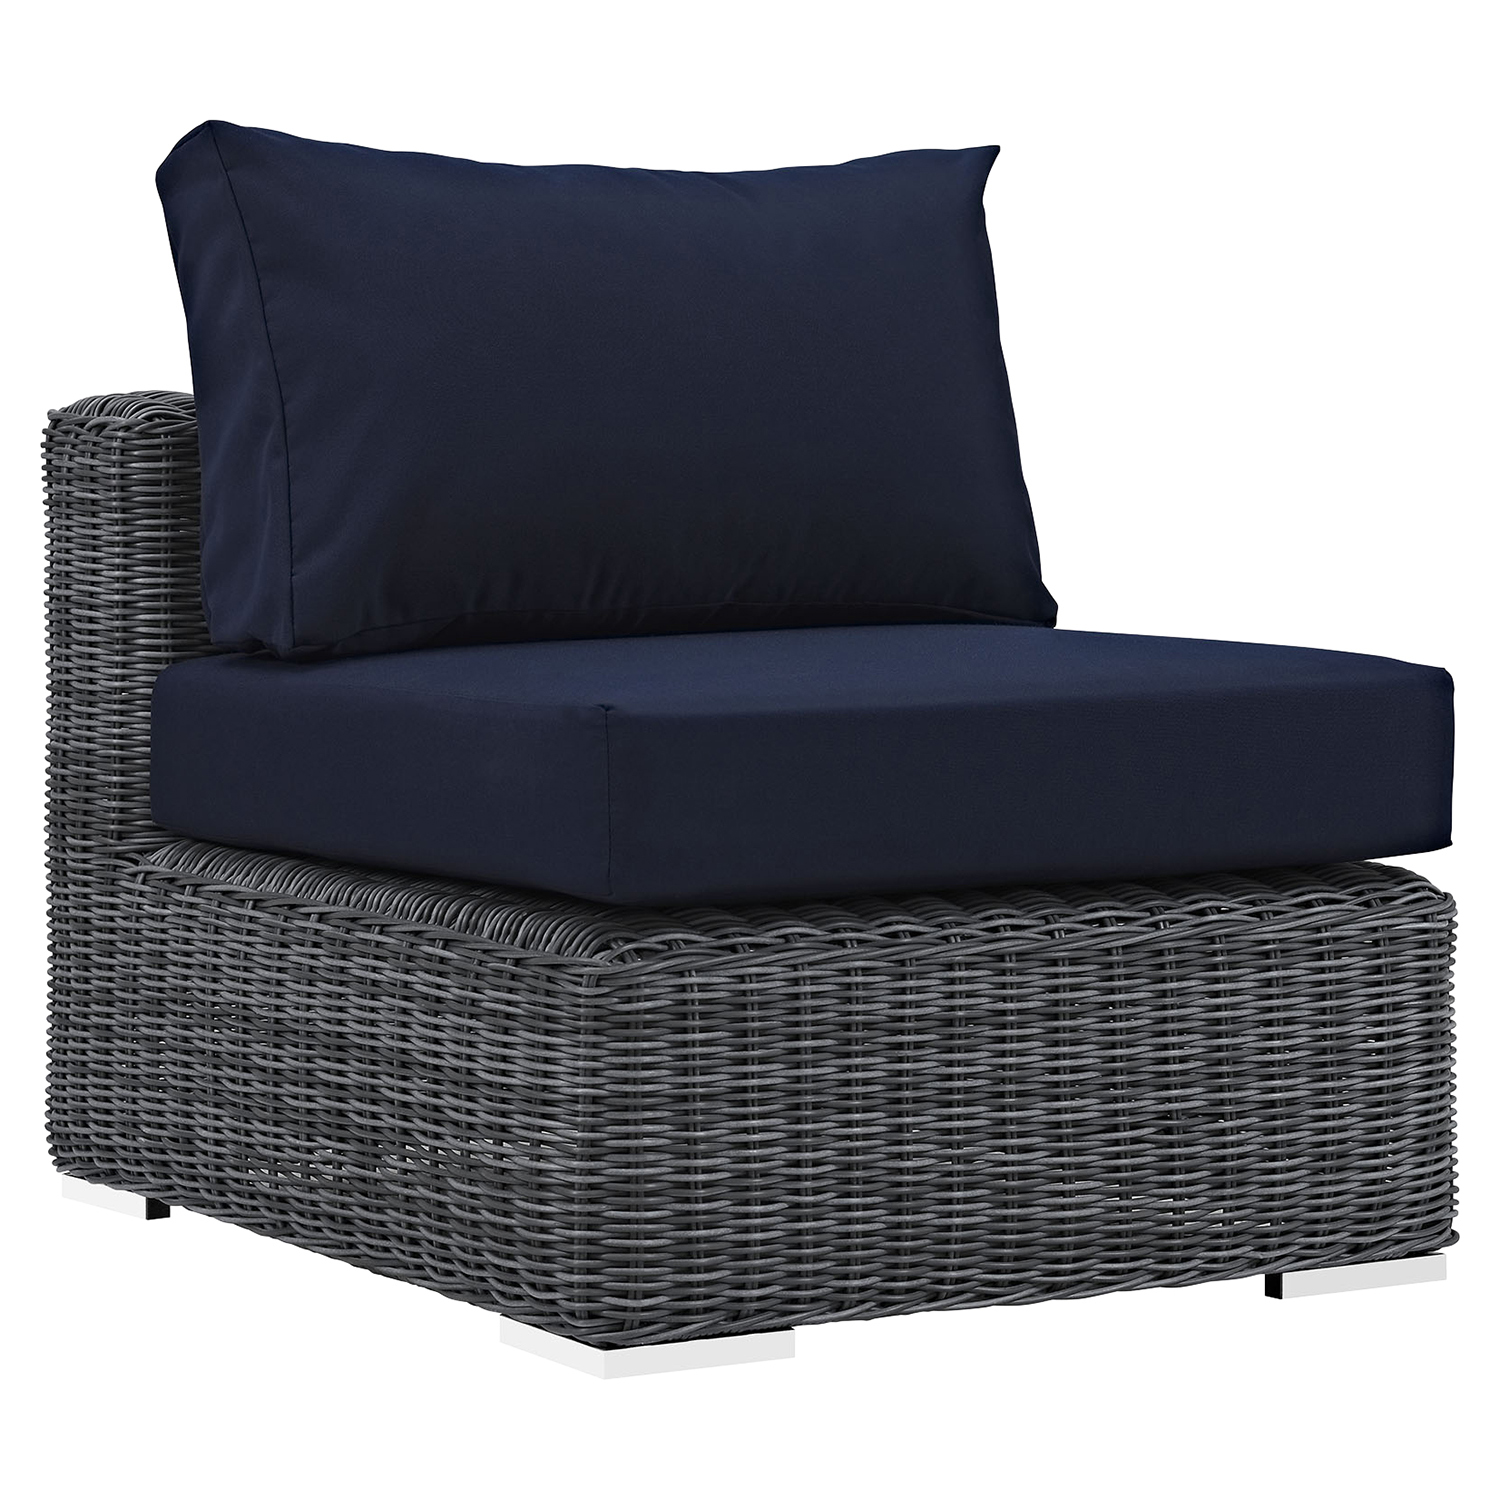 Summon 5 Pieces Patio Sofa Set - Sunbrella Canvas Navy - EEI-1896-GRY-NAV-SET